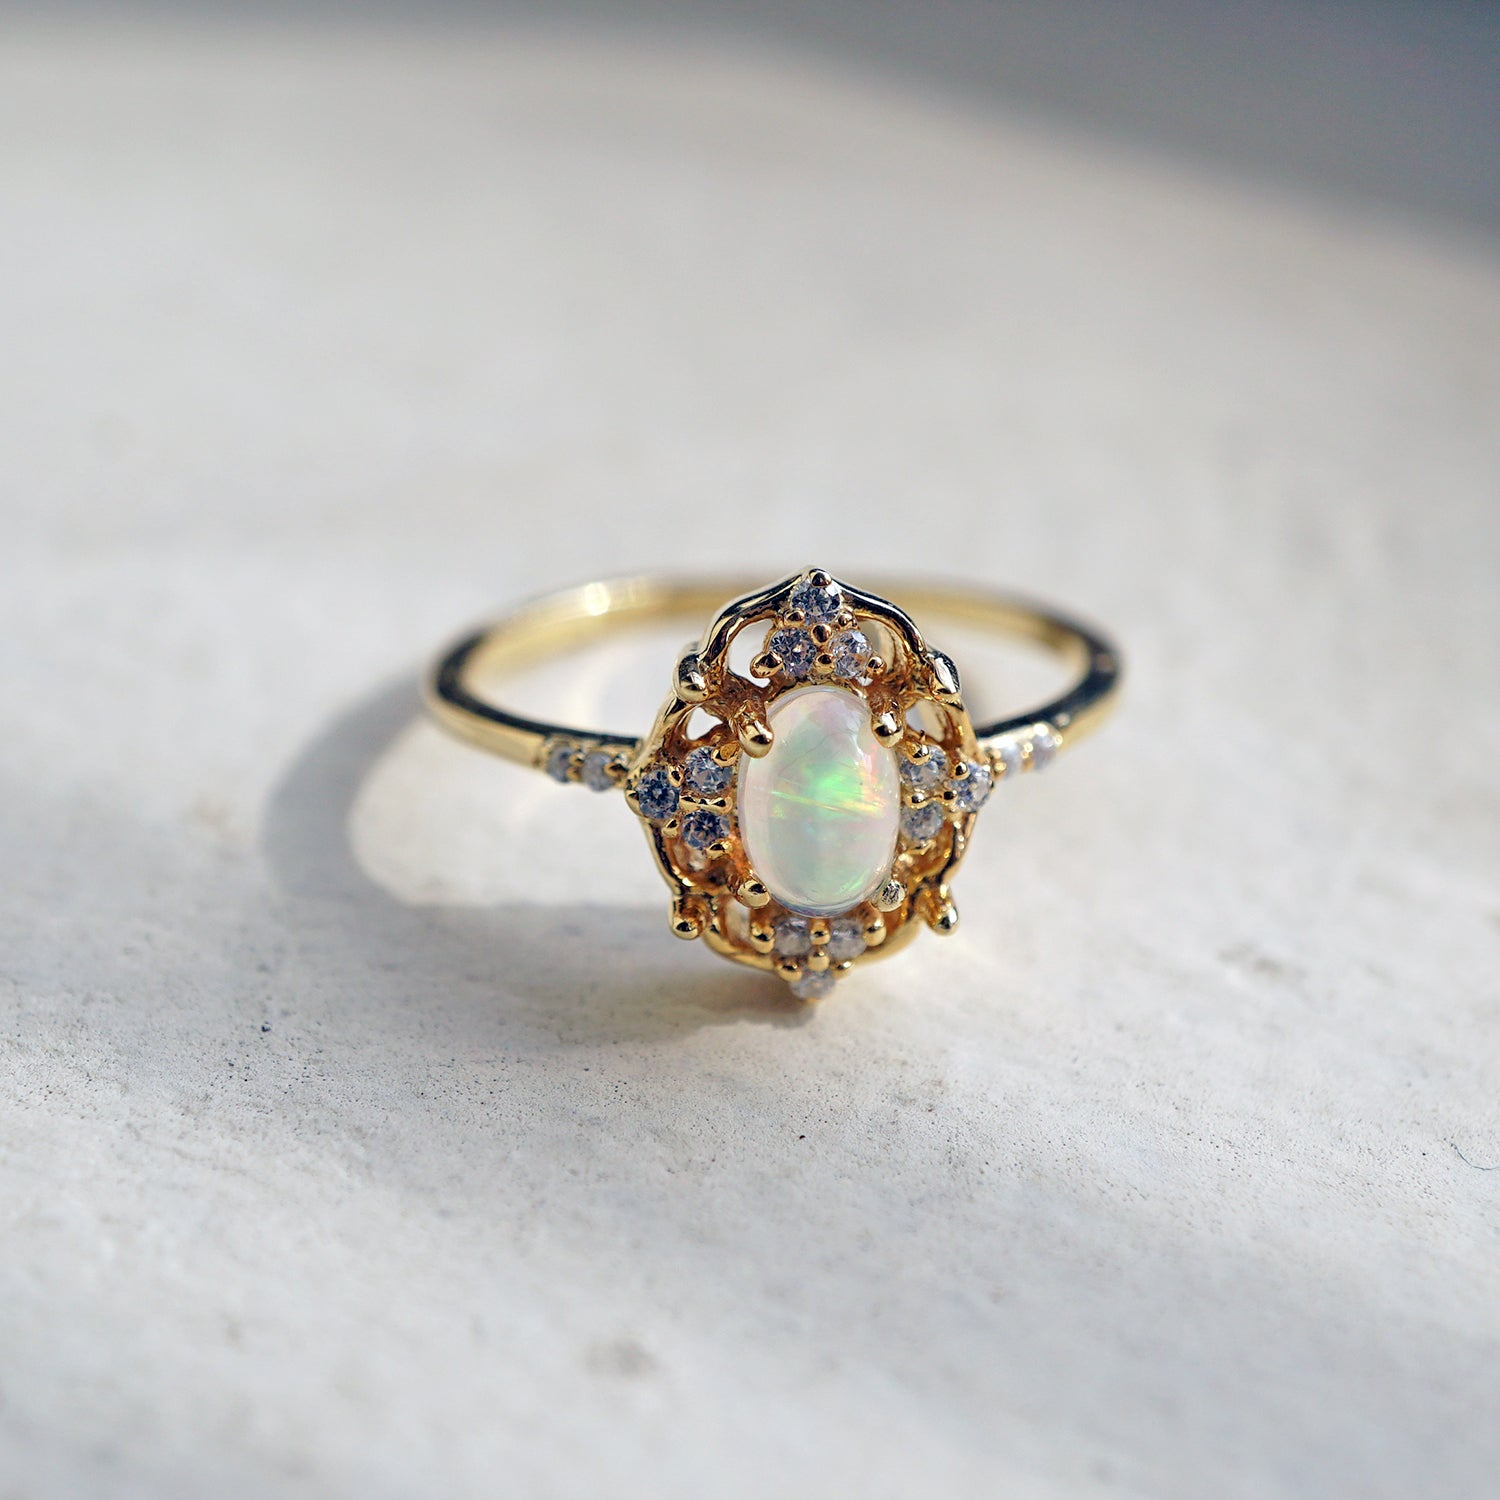 Cosmic Opal Ring - Tippy Taste Jewelry